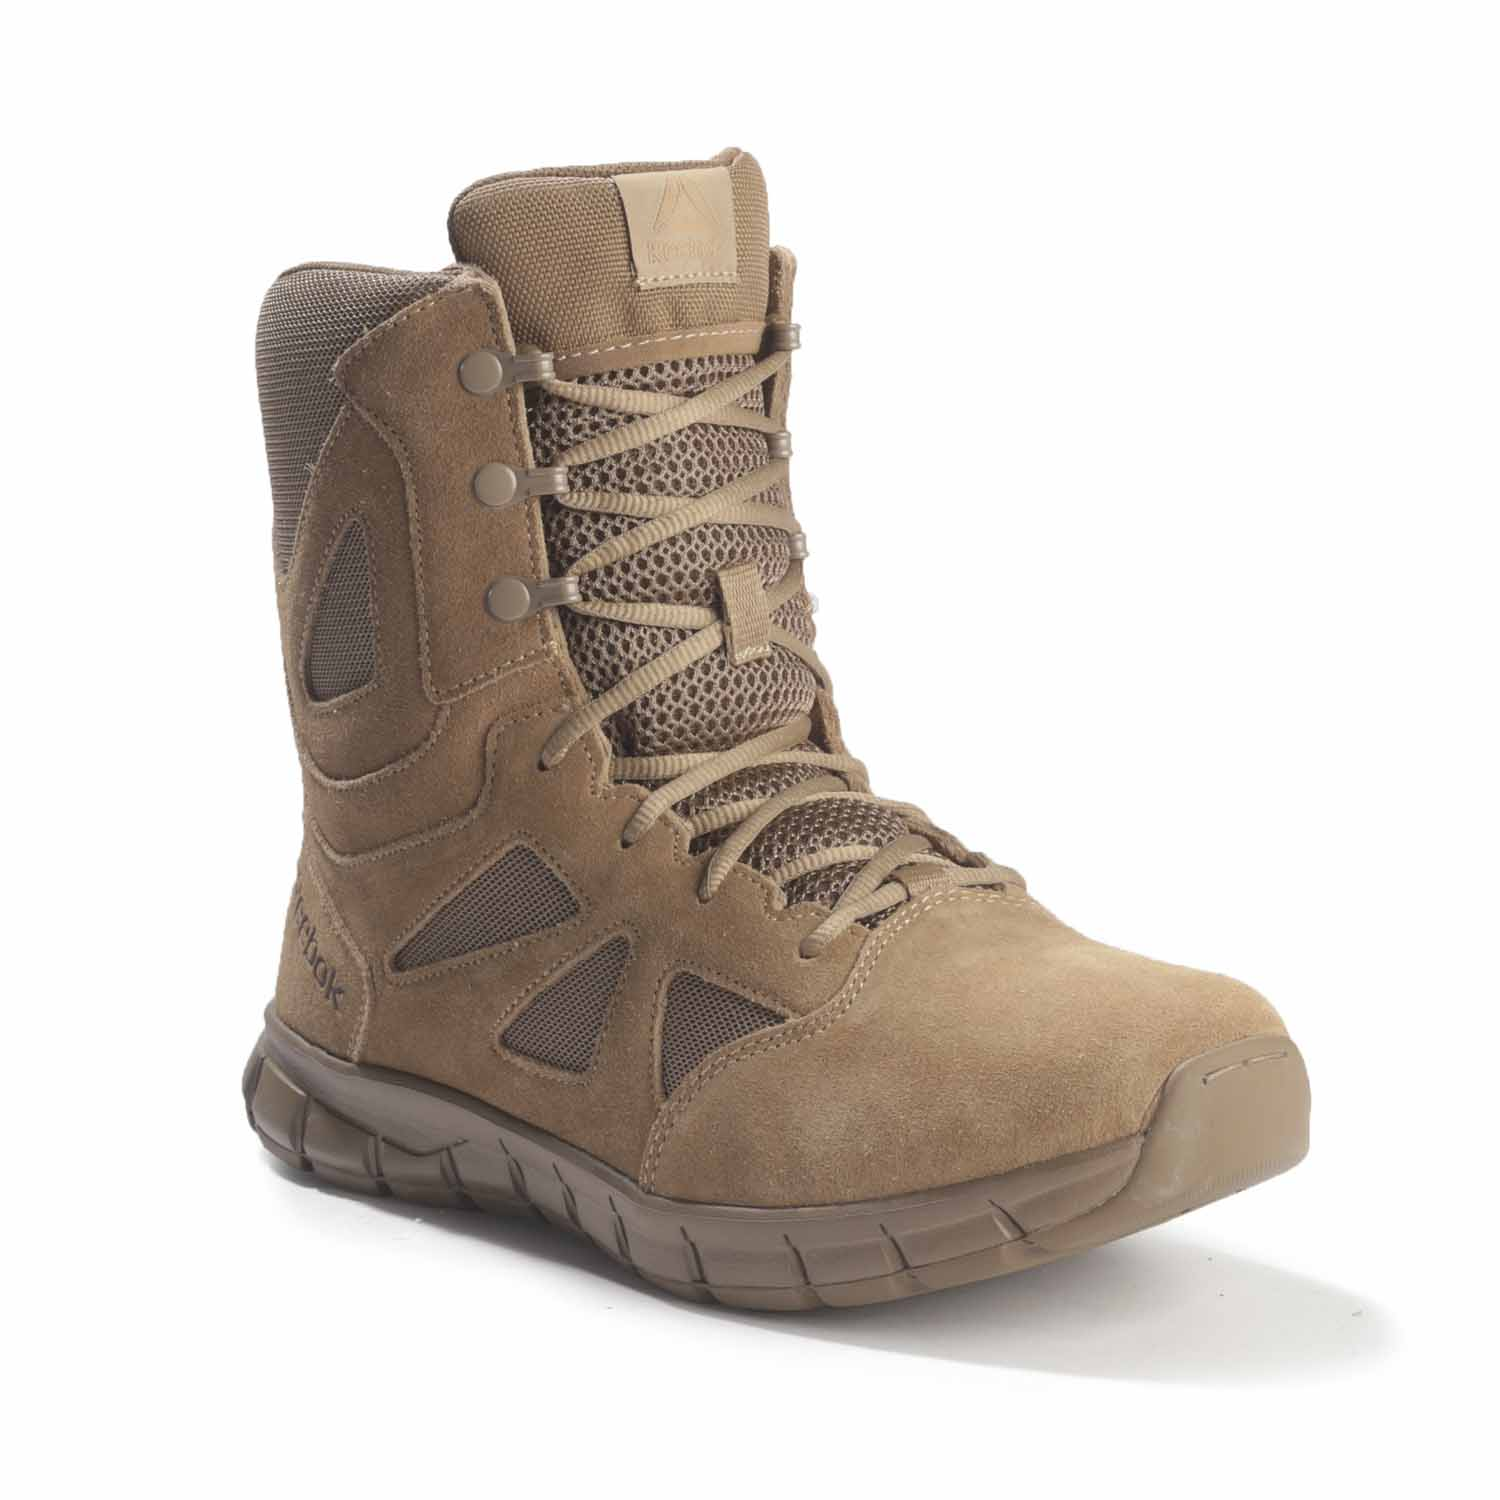 "Reebok Duty Sublite Cushion Tactical 8"" Boot (Coyote)"